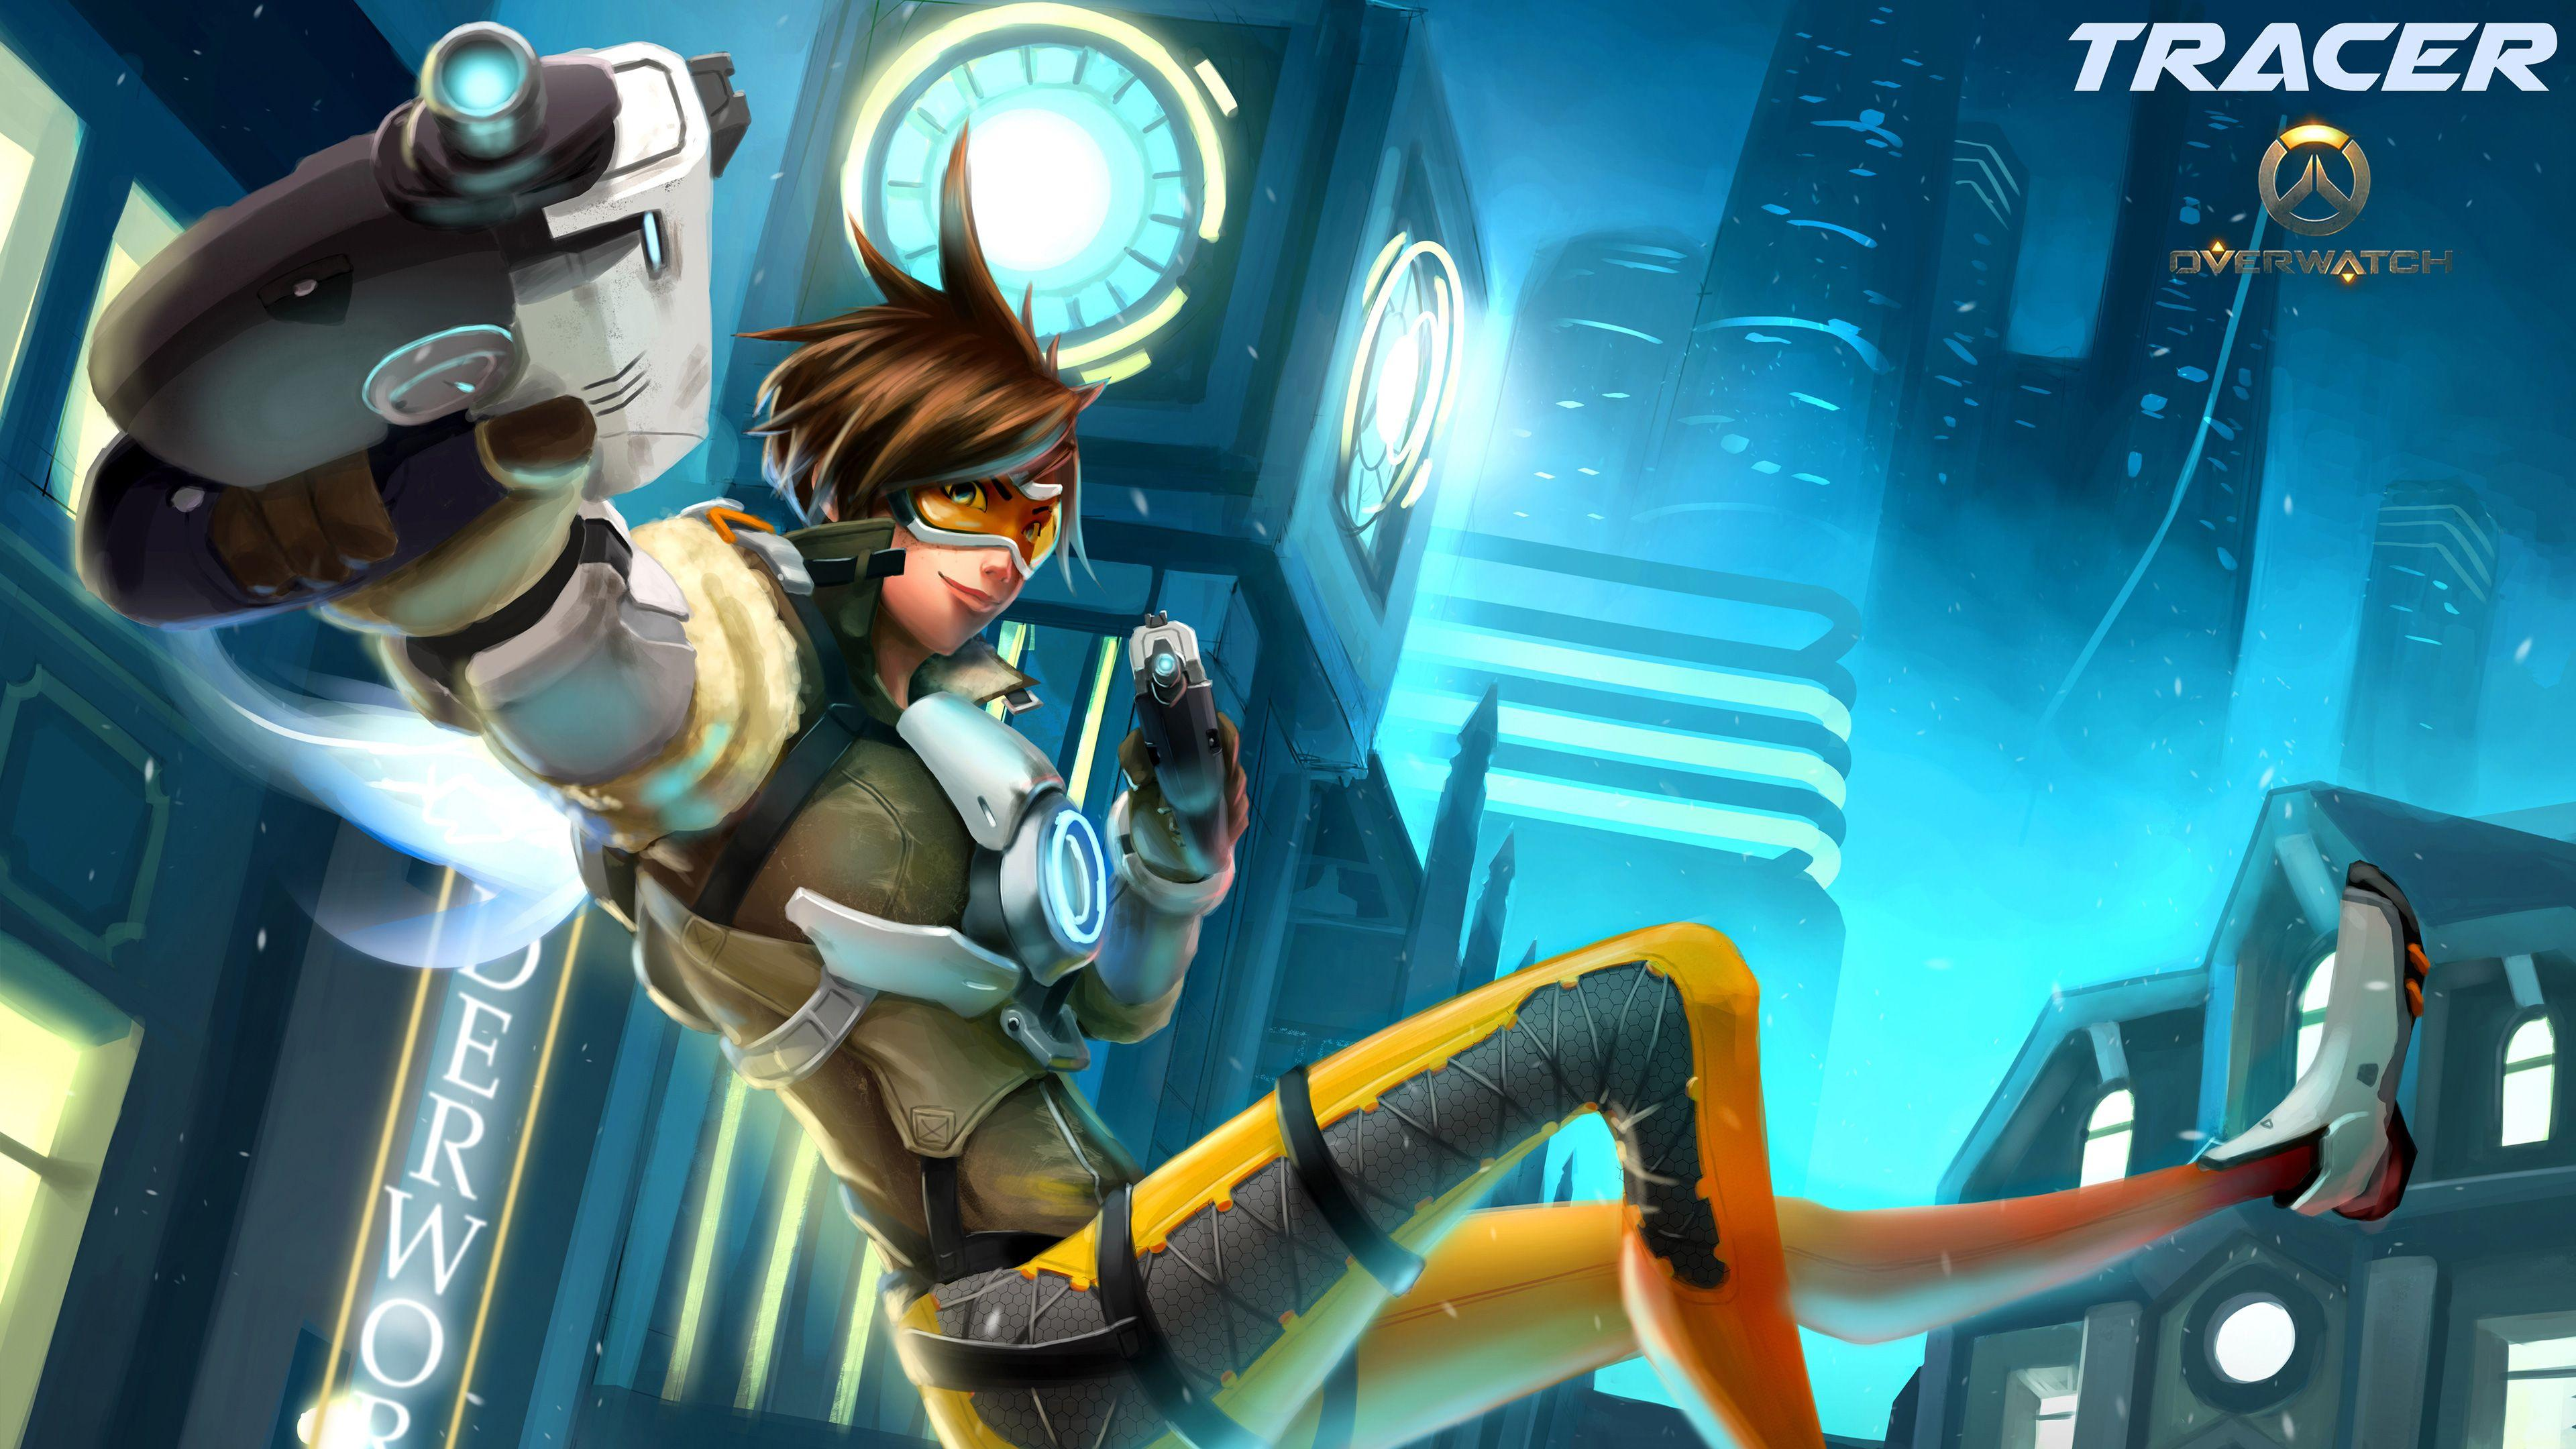 overwatch agent tracer wallpapers - photo #6